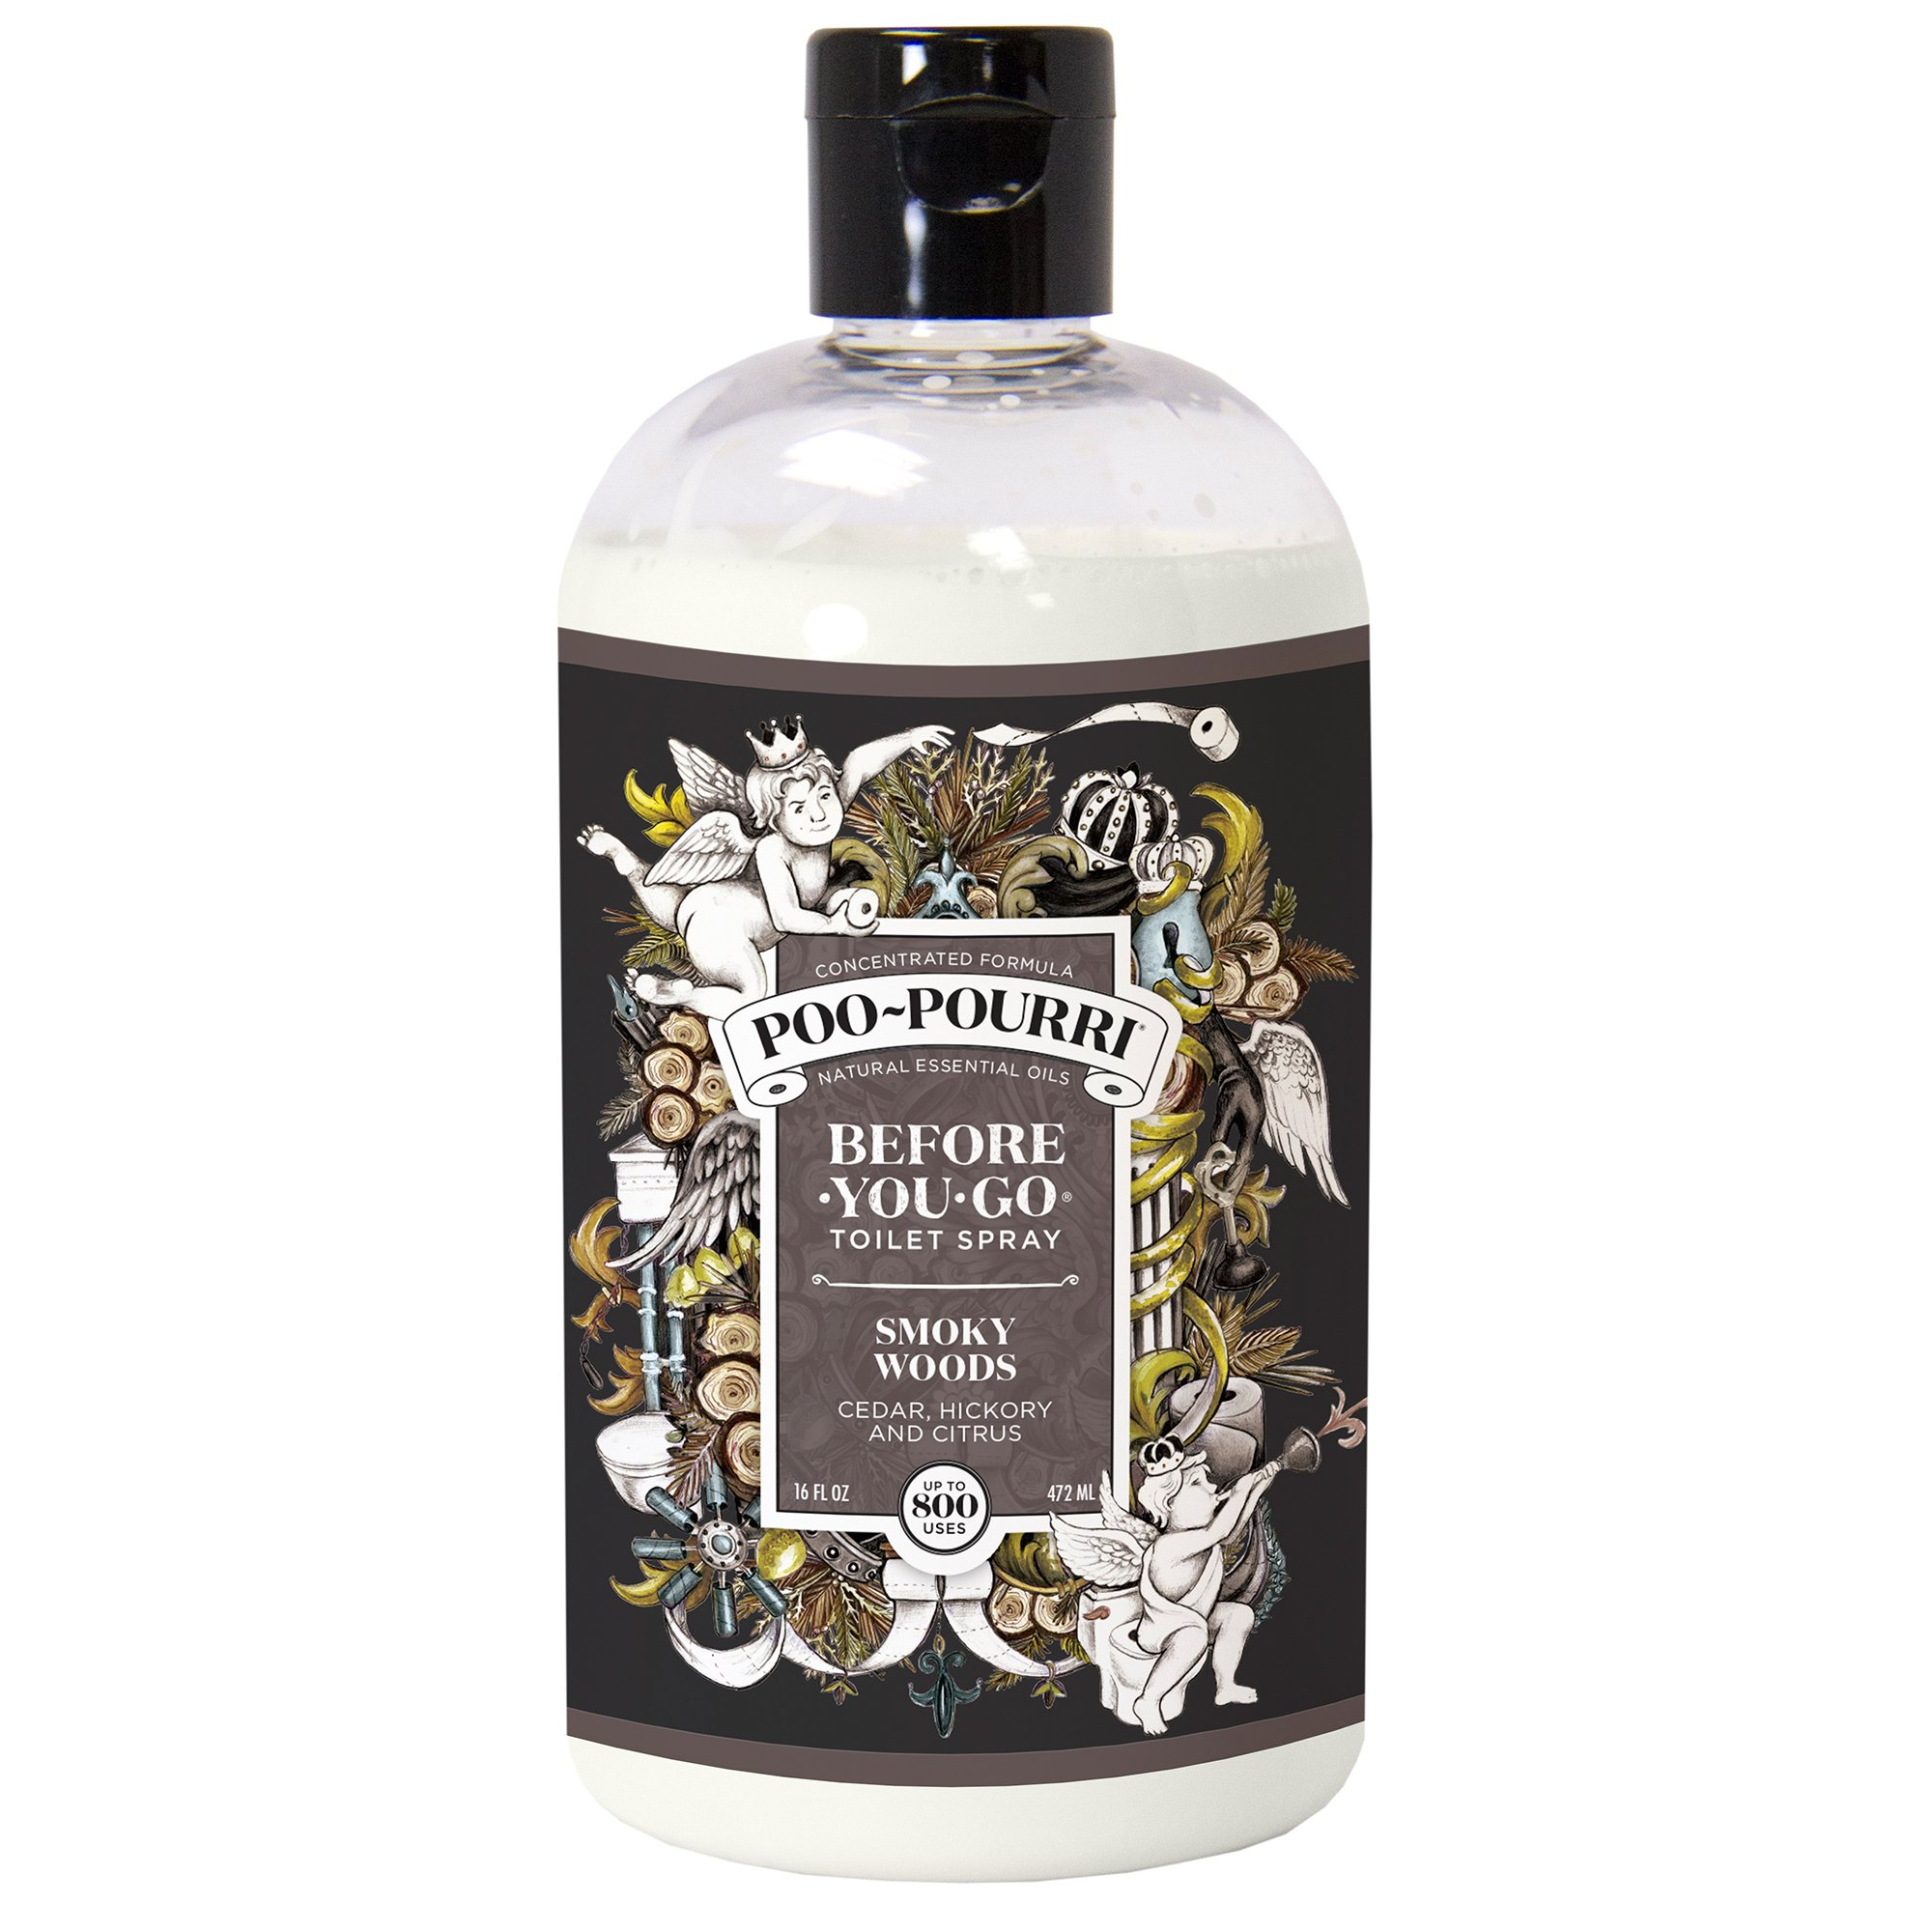 Poo-Pourri Before-You-Go Toilet Spray Refill(Sprayer Not Included), Smoky Woods Scent, 16 oz by Poo-Pourri